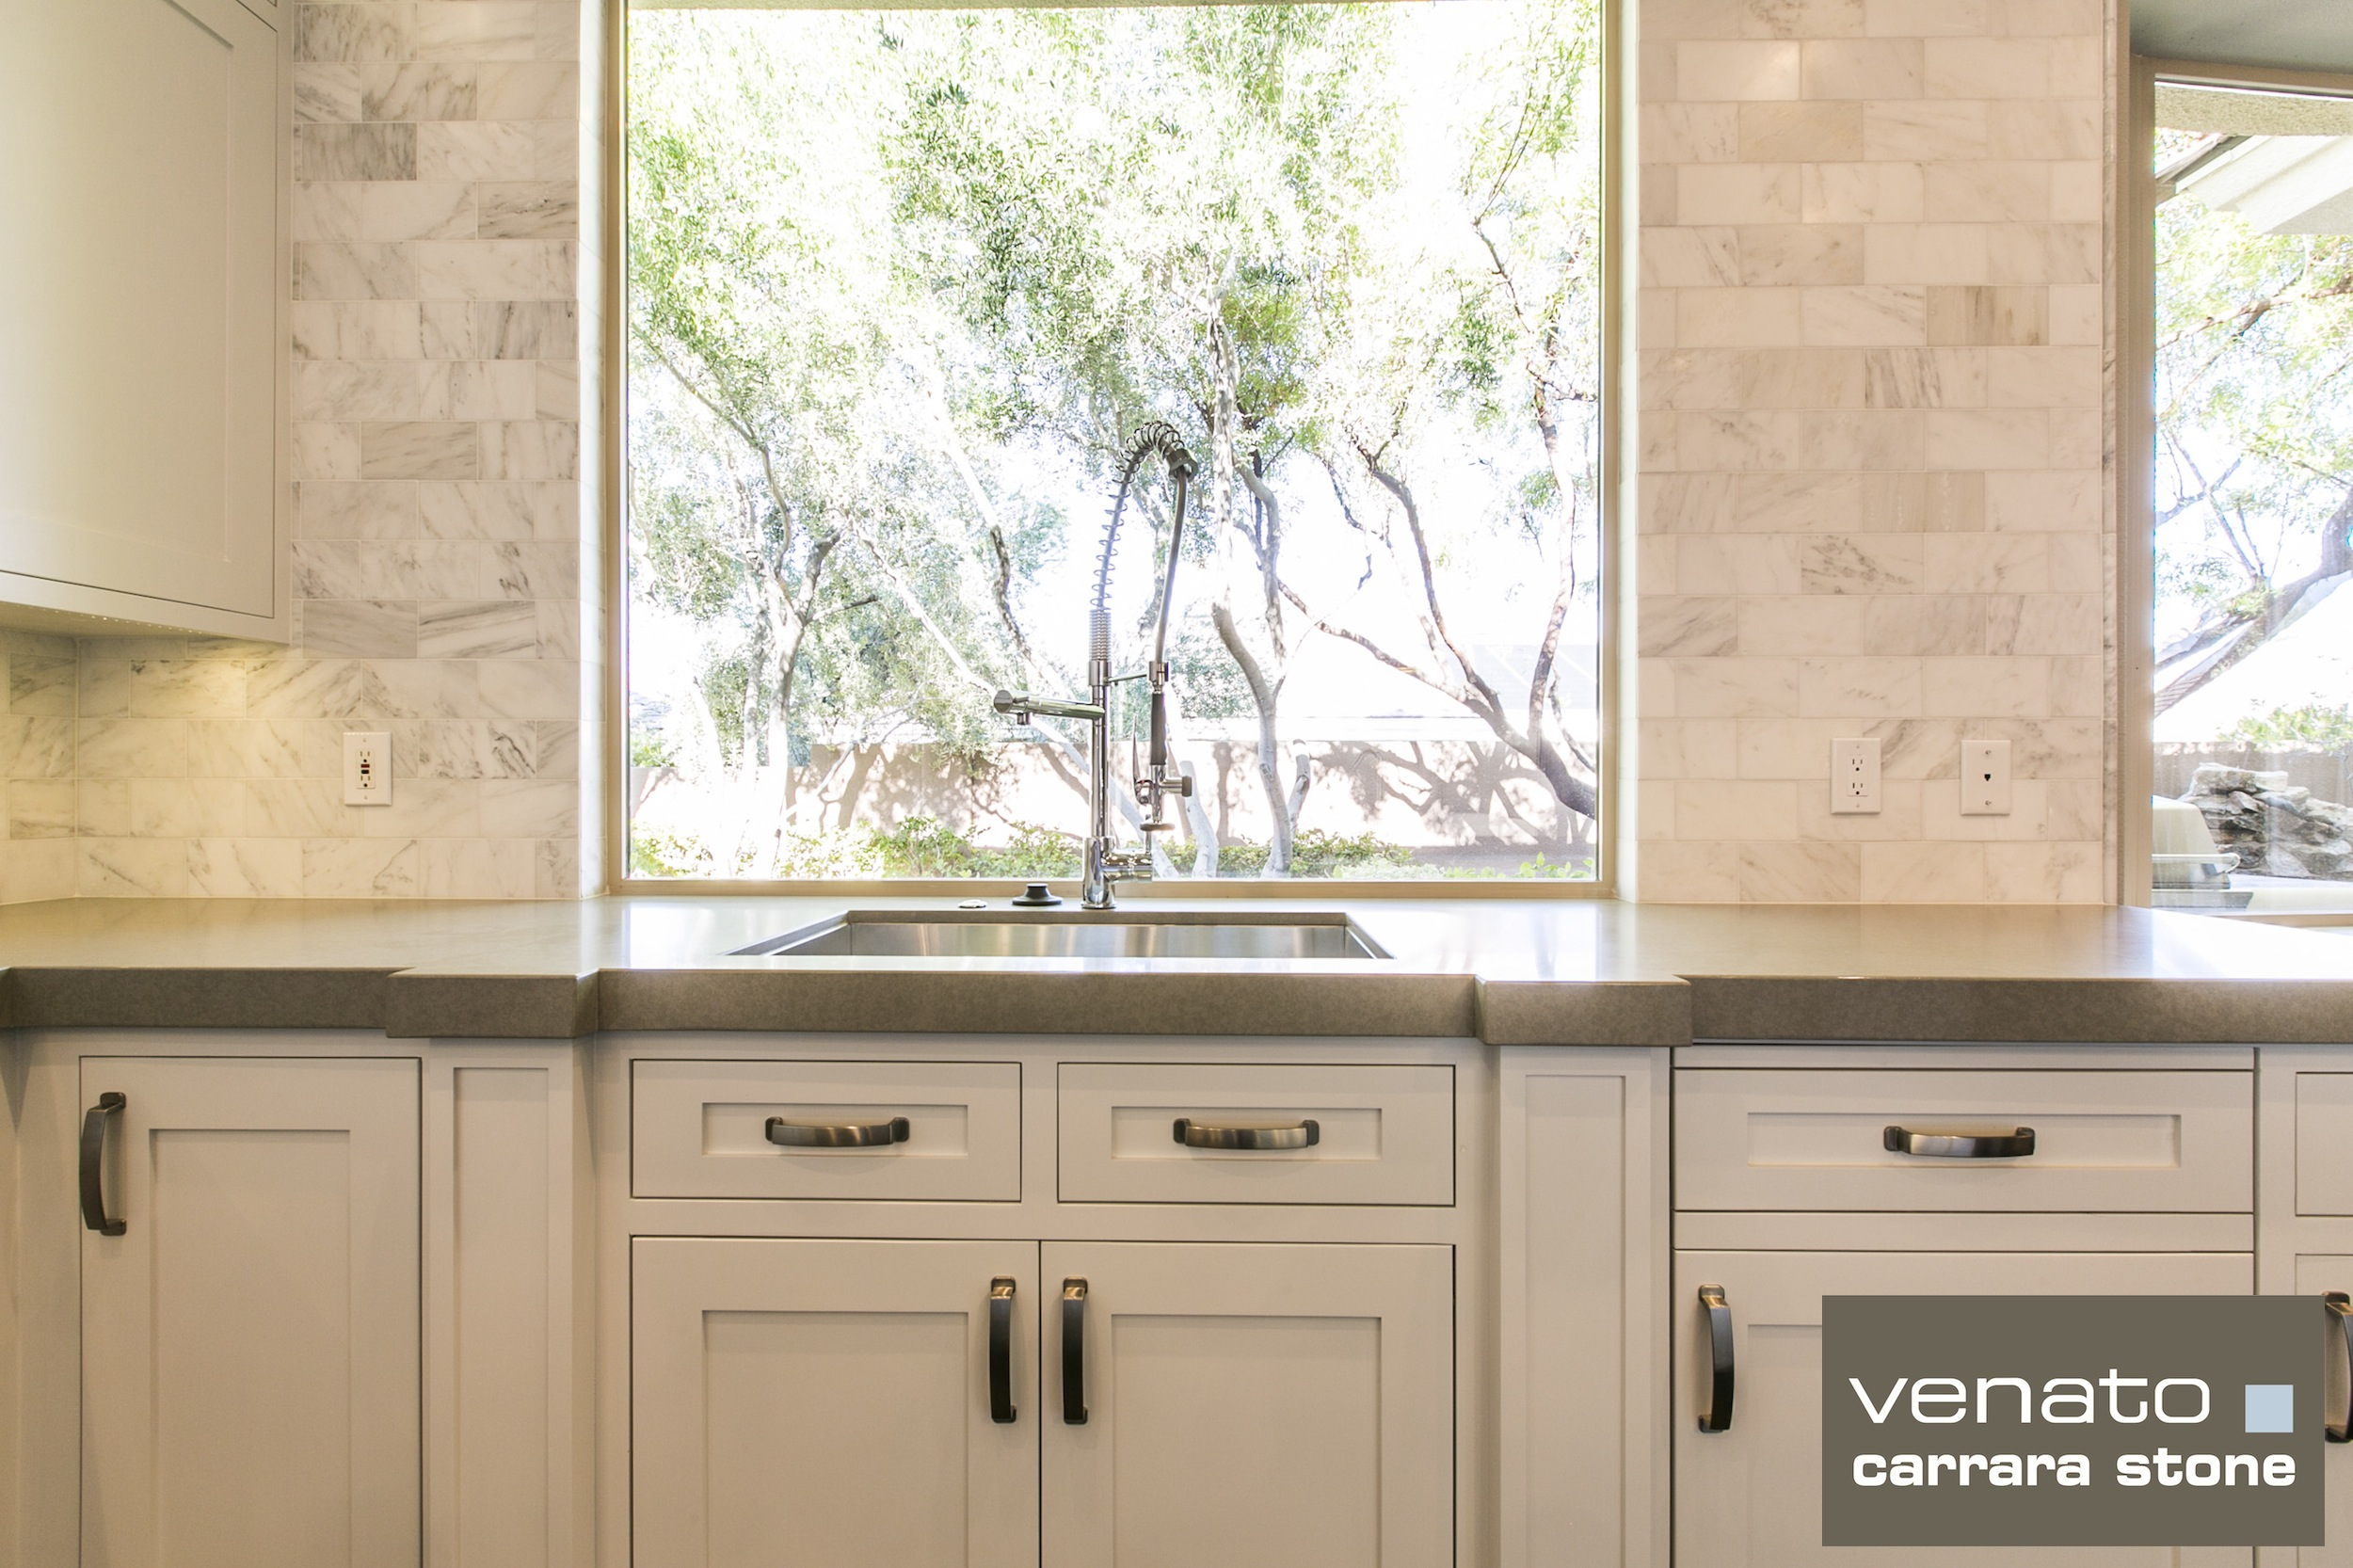 Carrara Venato Kitchen Backsplash The Builder Depot Blog - Carrara porcelain tile 3x6